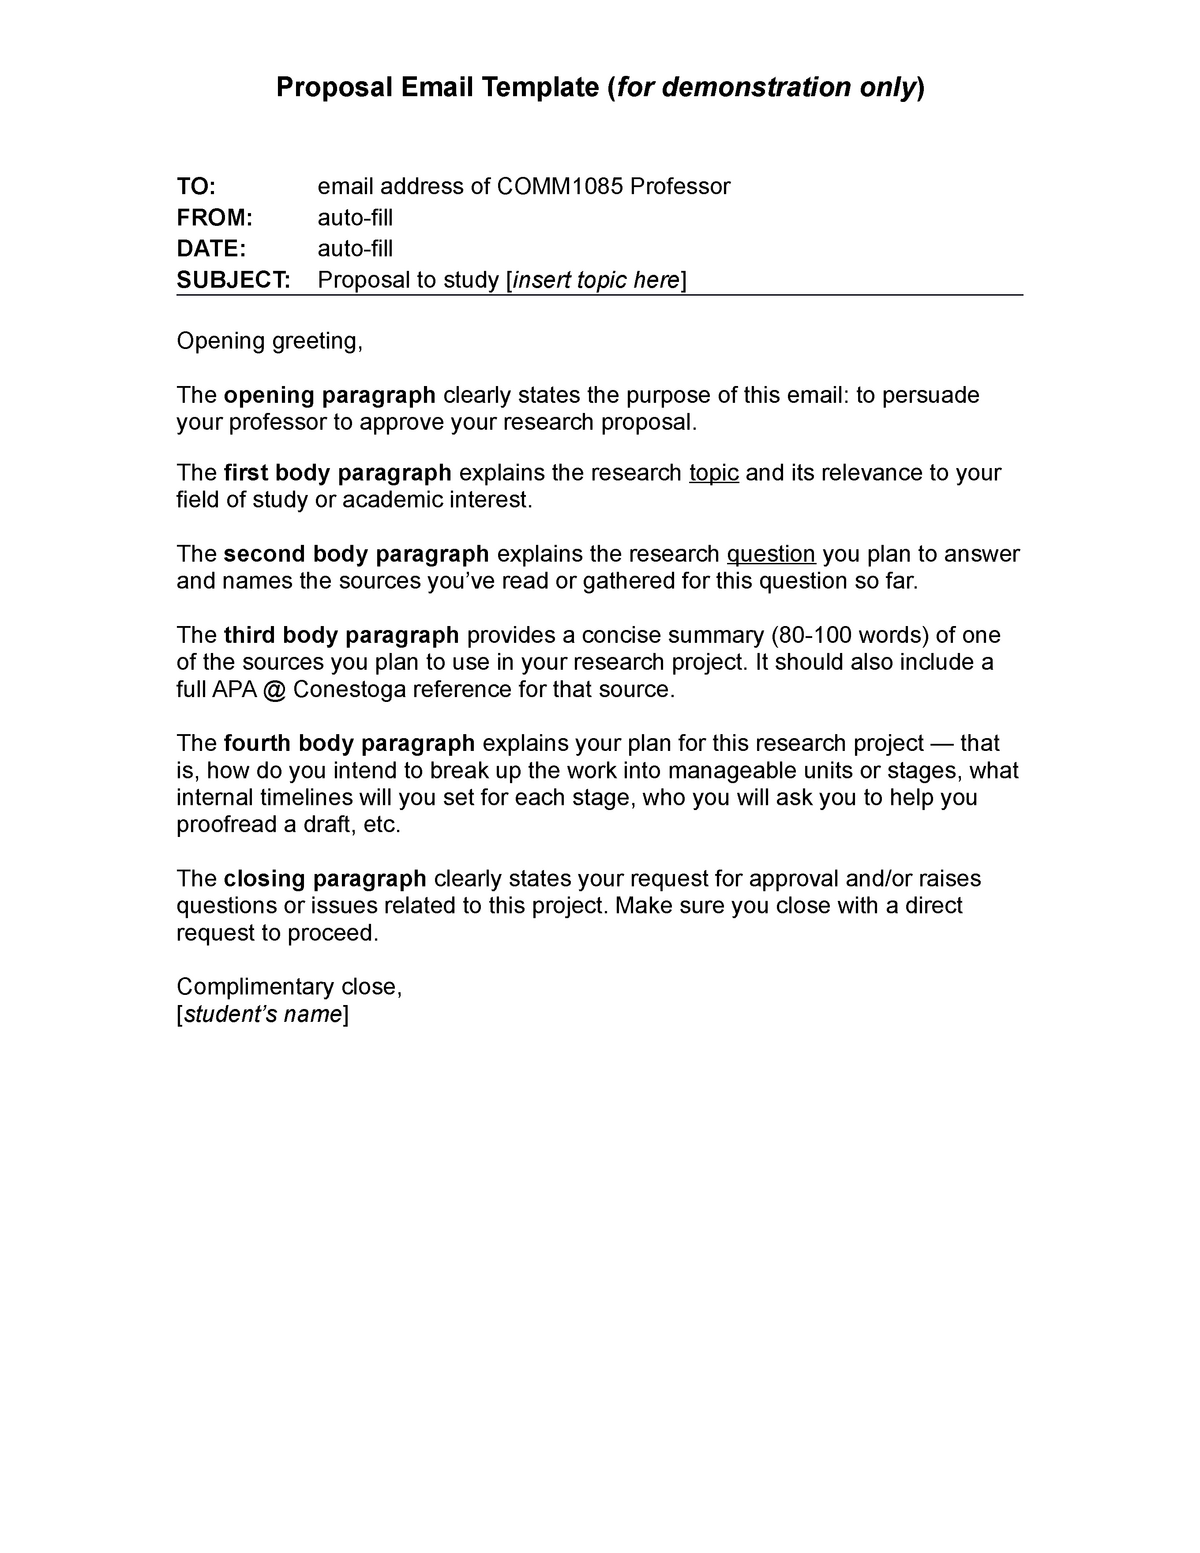 Comm1085 Proposal Email Template Studocu